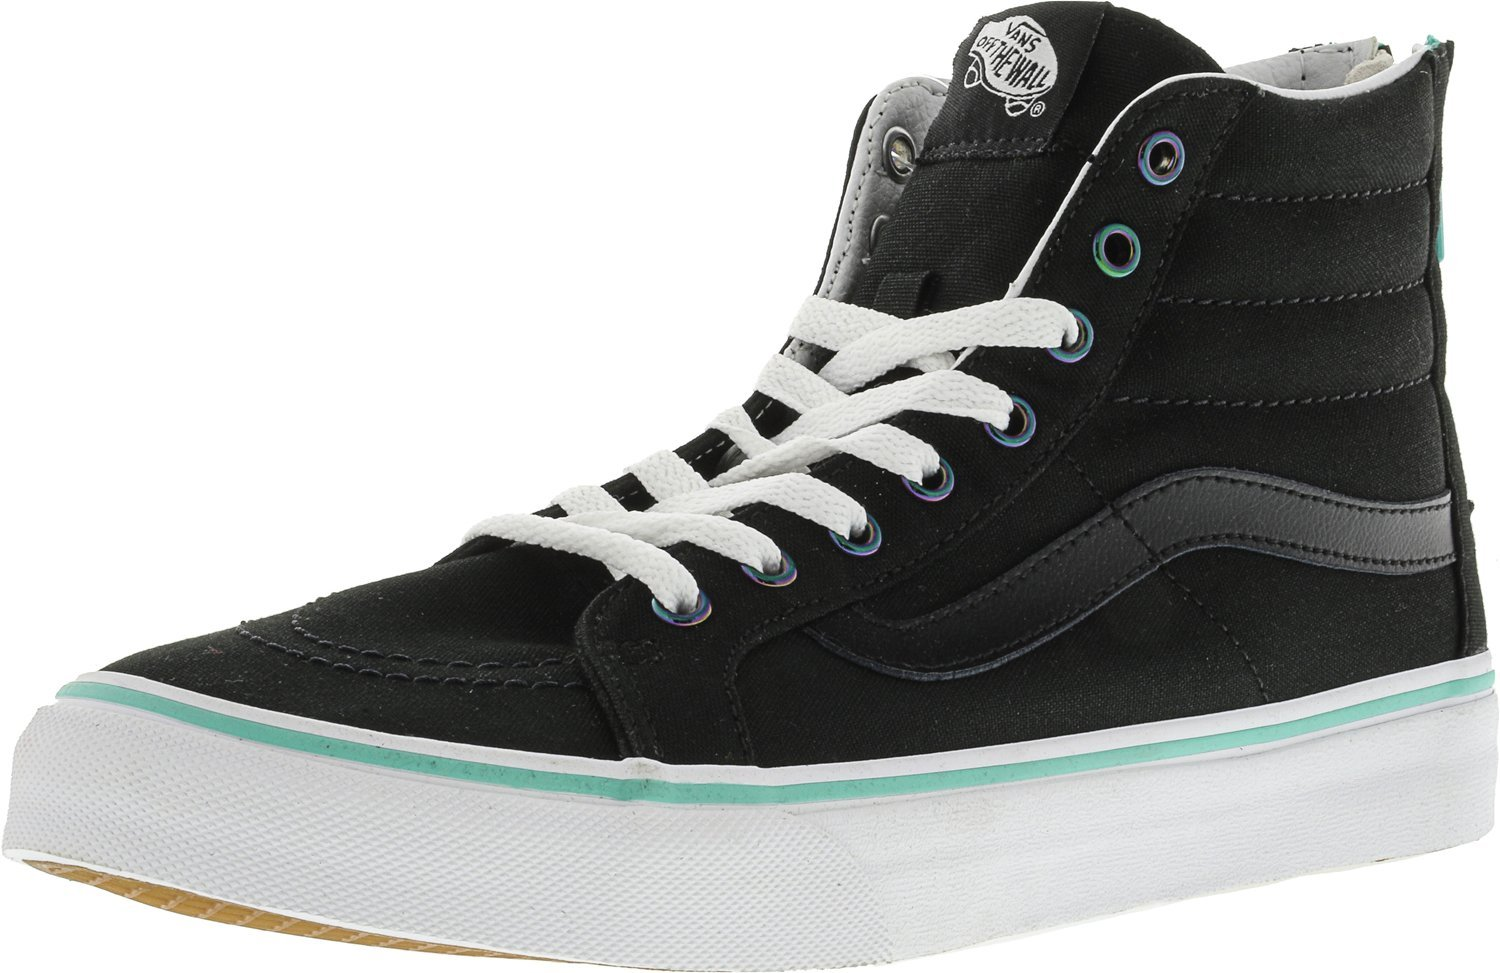 Vans Mens Sk8-Hi Hight Top Lace Up Fashion Sneakers, Black, Size 8.0